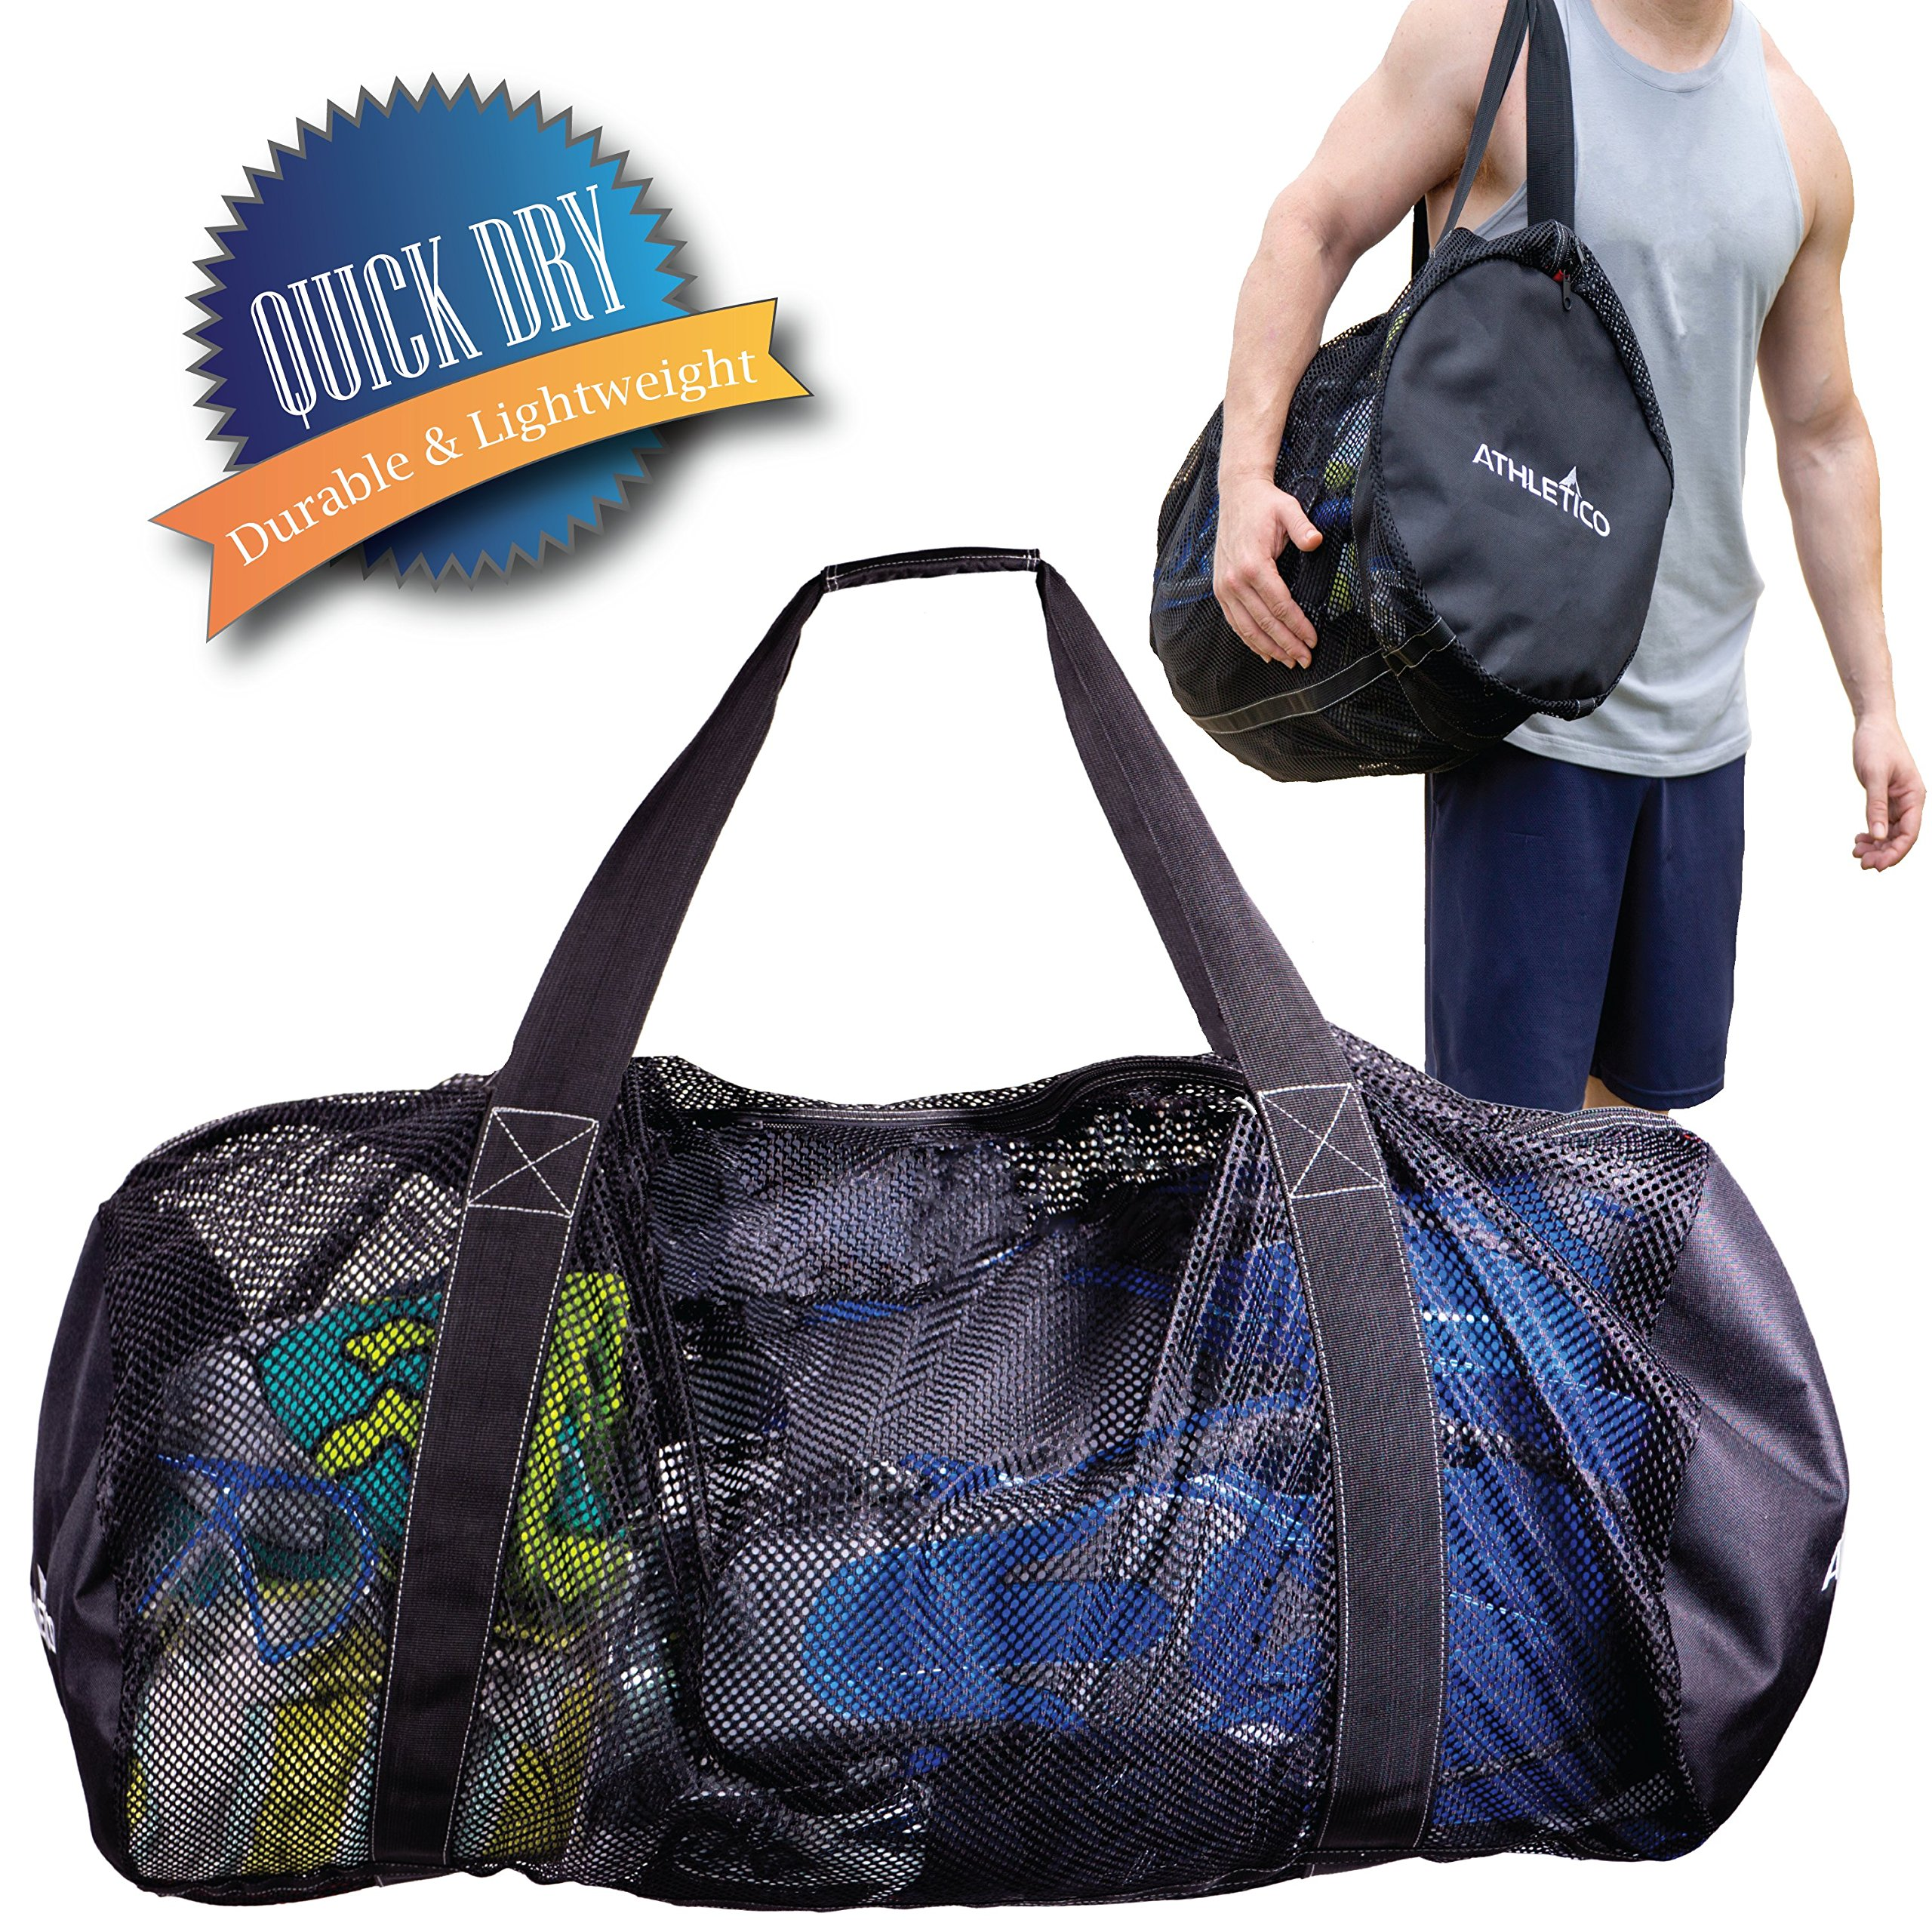 Athletico Mesh Dive Duffel Bag for Scuba or Snorkeling - XL Mesh Travel Duffle for Scuba Diving and Snorkeling Gear & Equipment - Dry Bag Holds Mask, Fins, Snorkel, and More by Athletico